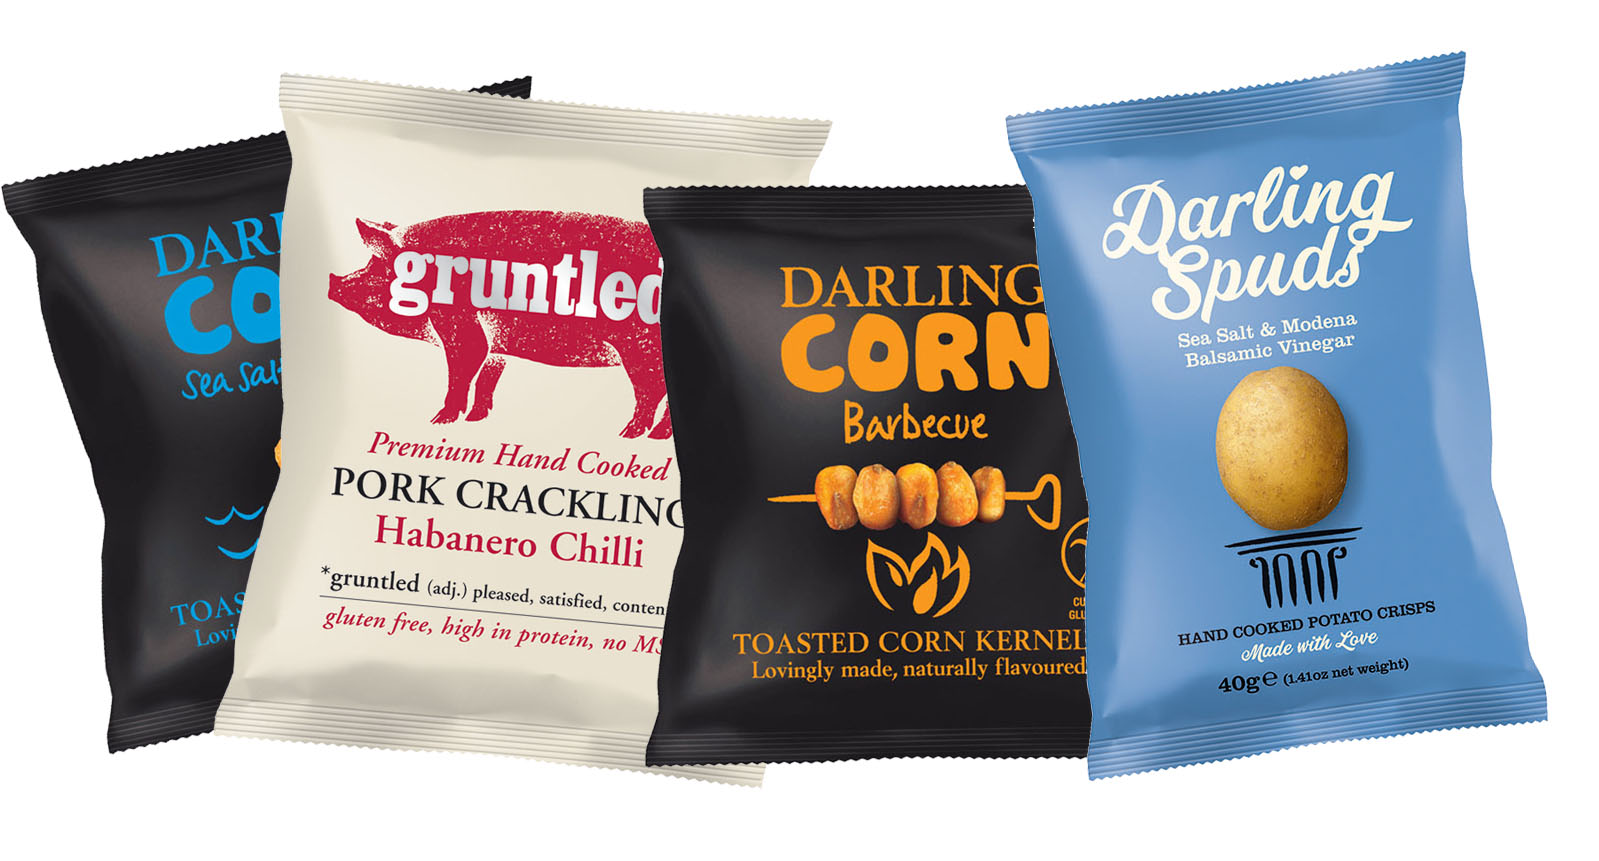 Darlings Spuds, Darling Corn and Gruntled packaging group shot